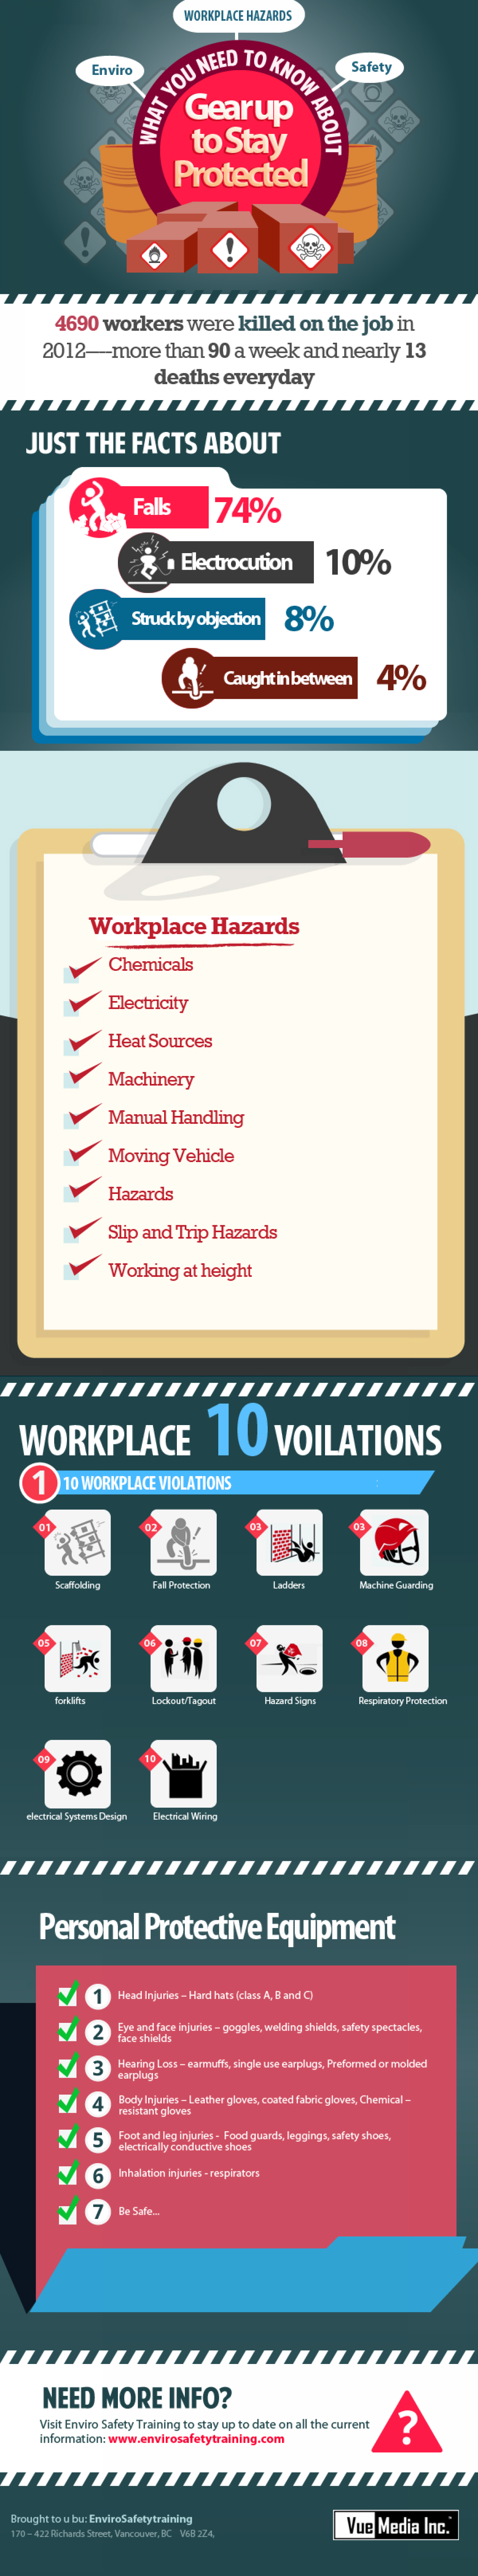 Work Place Hazards Infographic